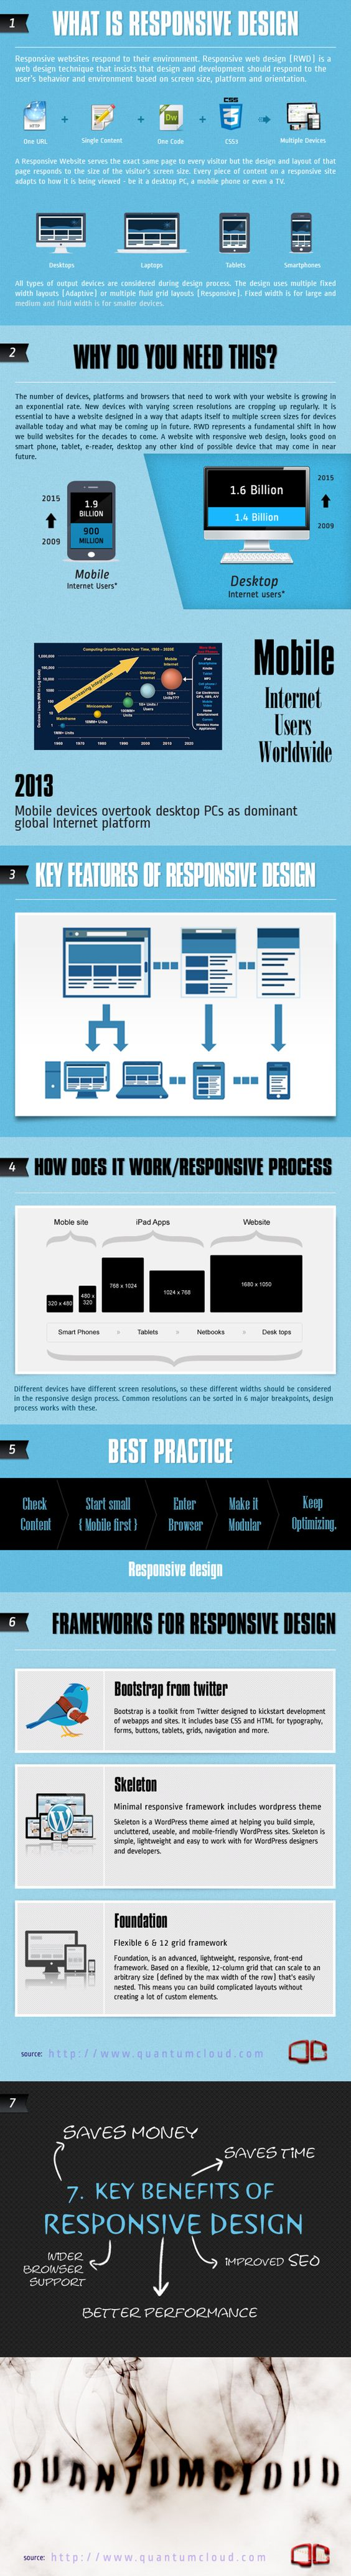 Why do you need Responsive Web Design? Infographic on Behance